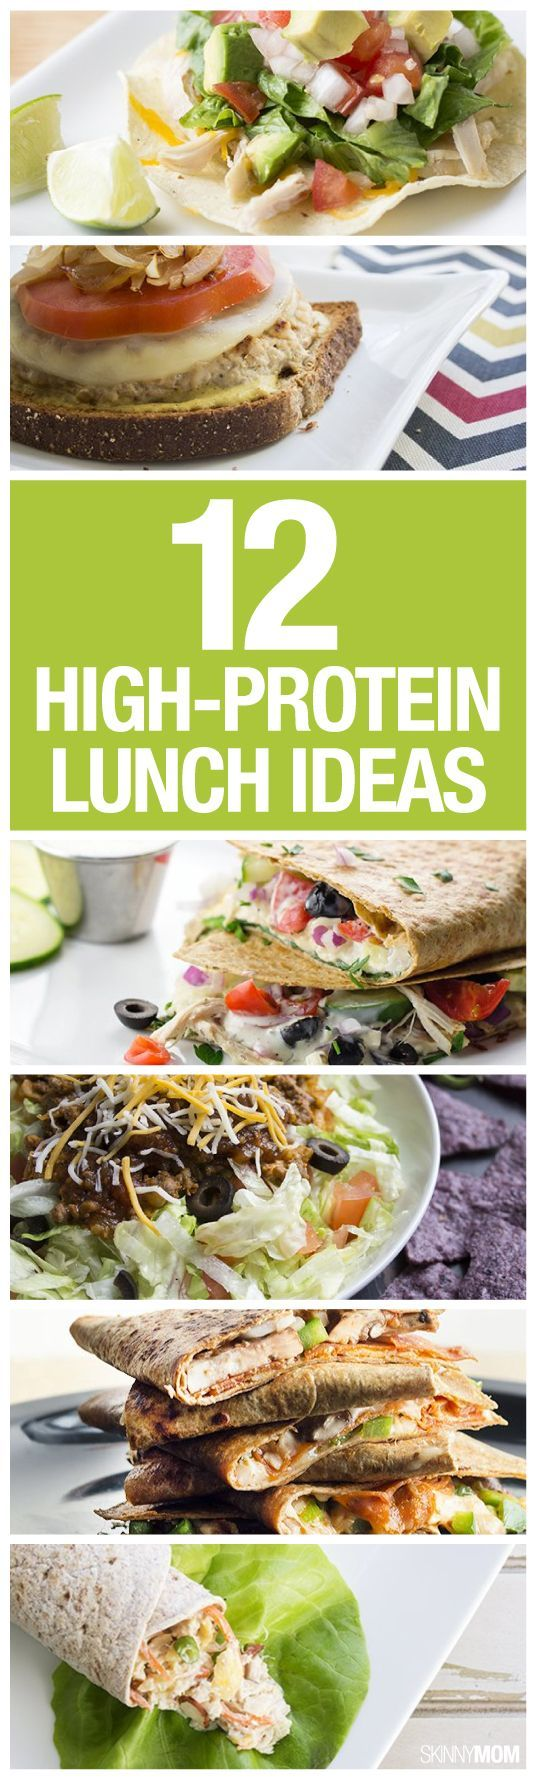 Eating a lot of protein at lunch will keep you full and focused all afternoon. Try out one of these protein-packed recipes!